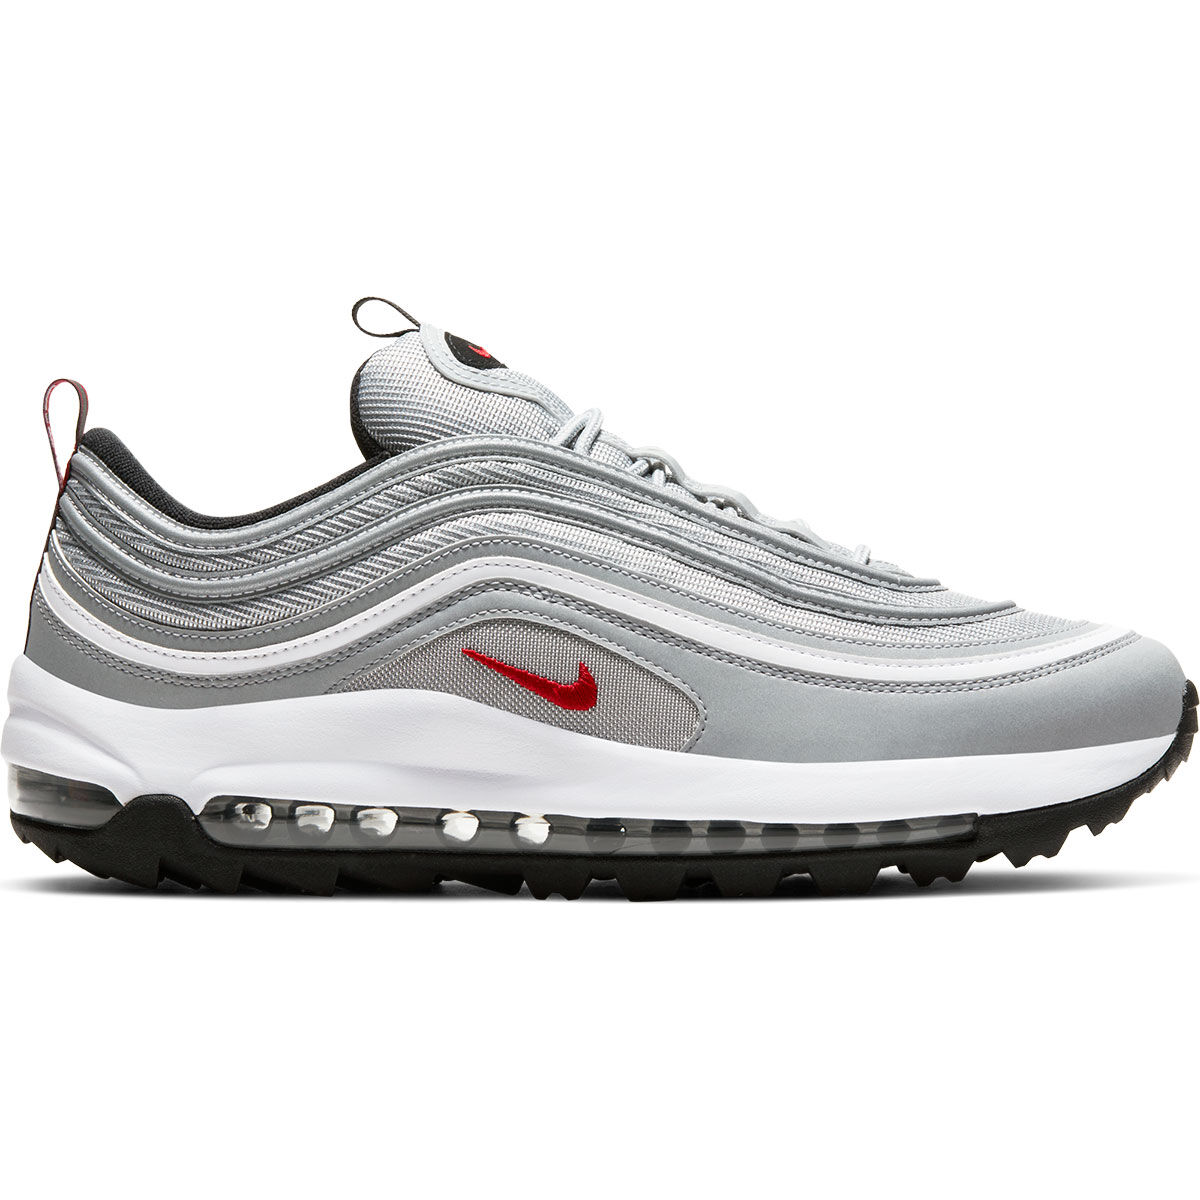 Nike Golf Air Max 97 G Shoes from american golf